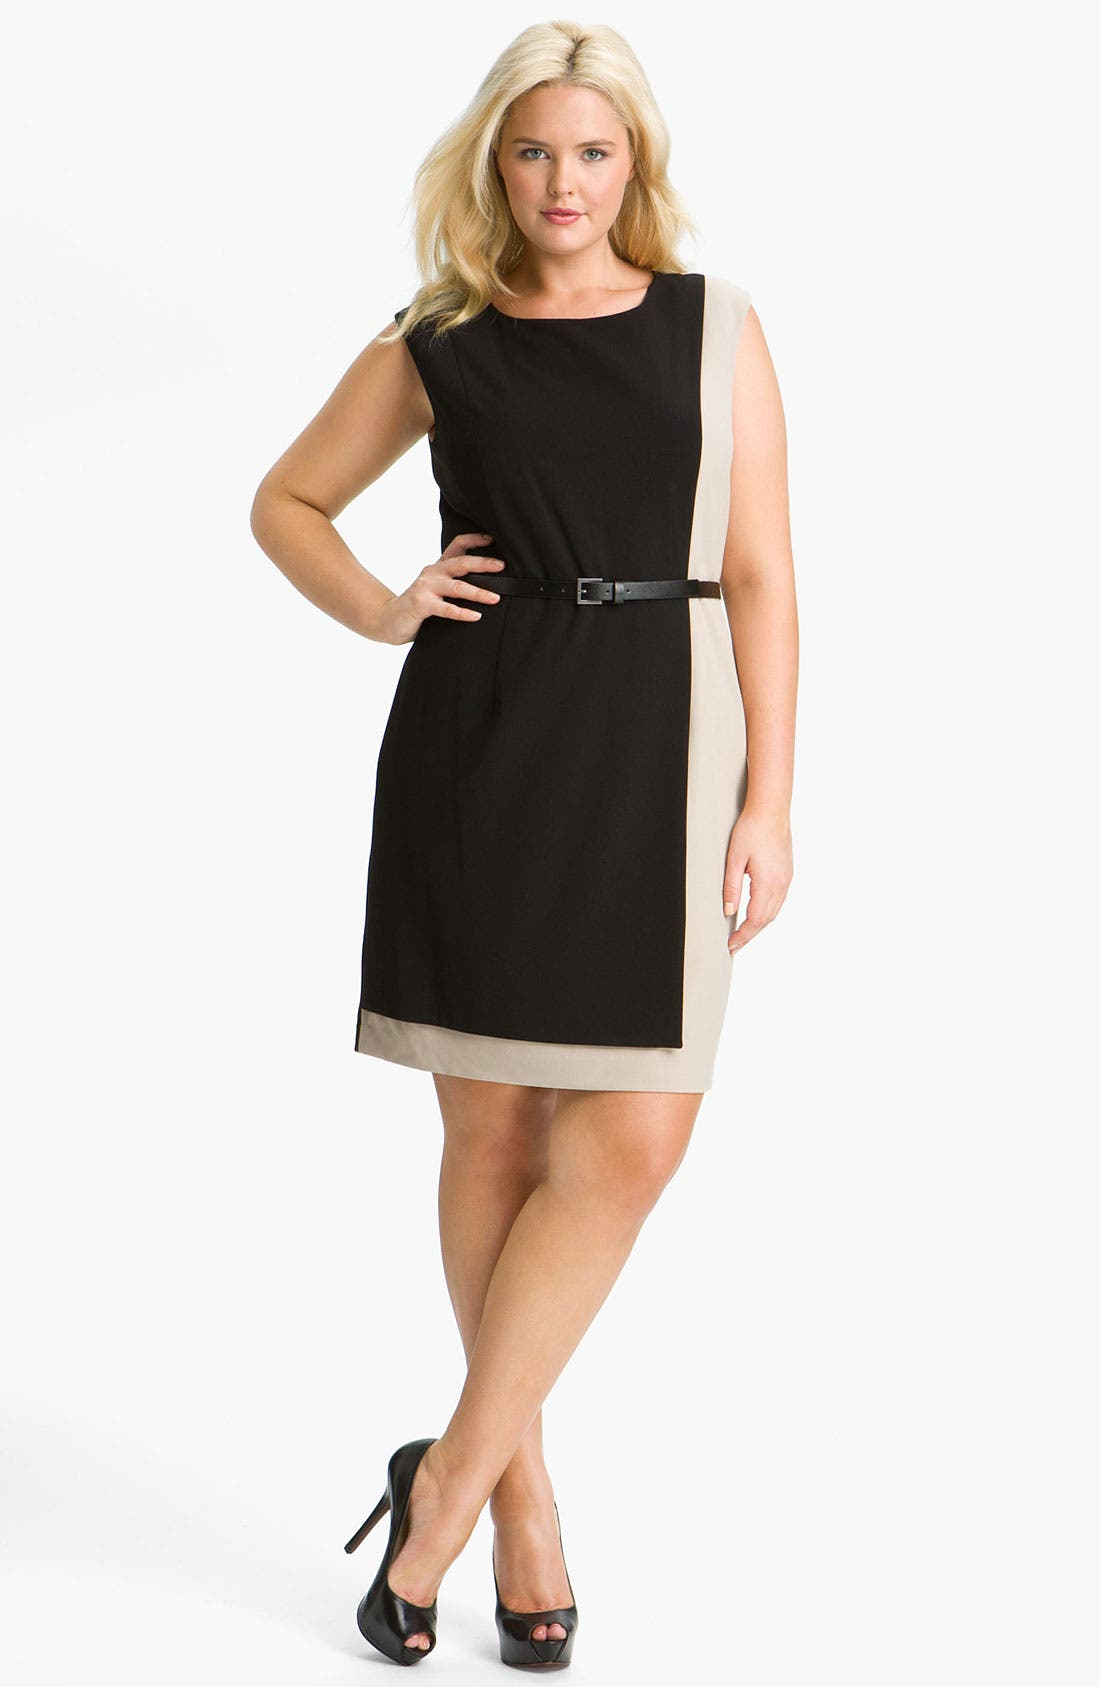 Alternate Image 1 Selected - Calvin Klein Colorblock Belted Sheath Dress (Plus Size)